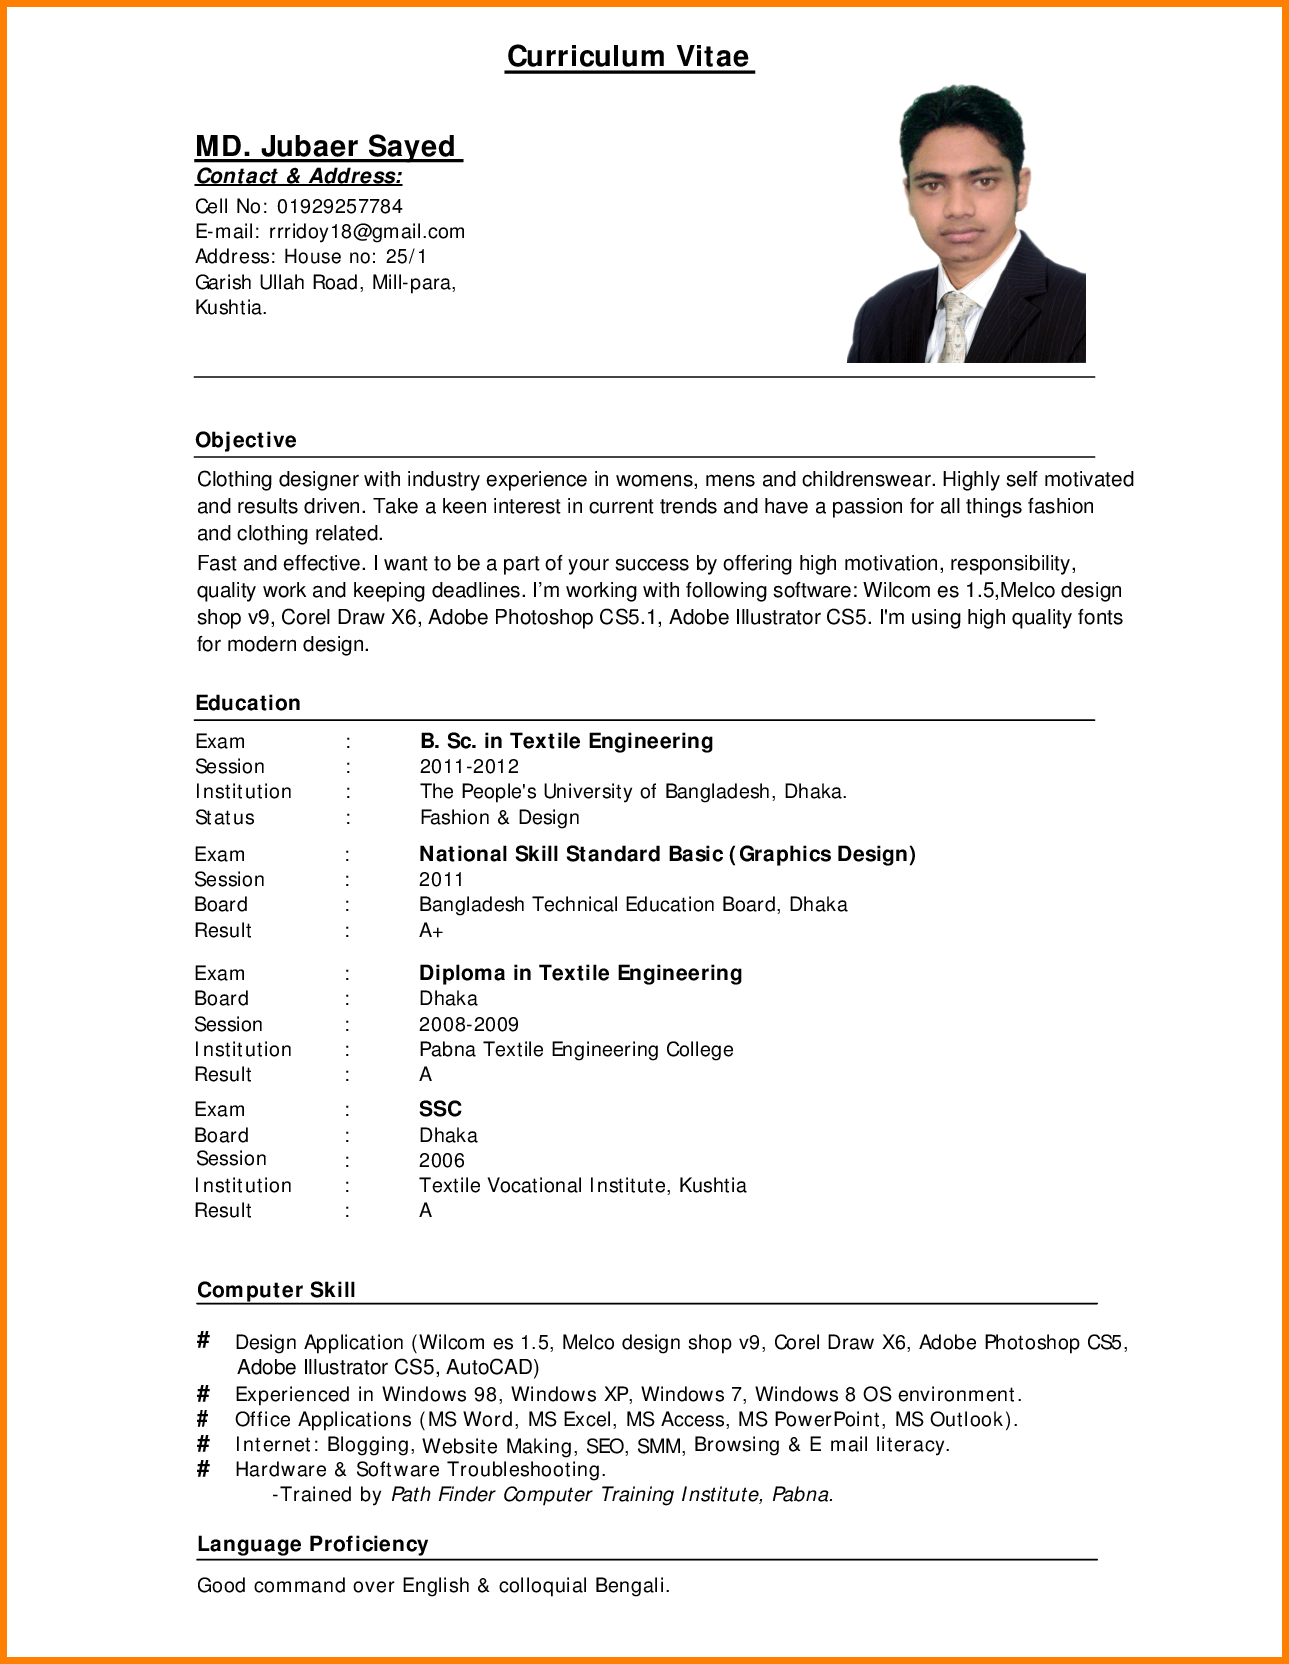 Resume Samples Online Standard Cv Format Bangladesh Professional Resumes Sample